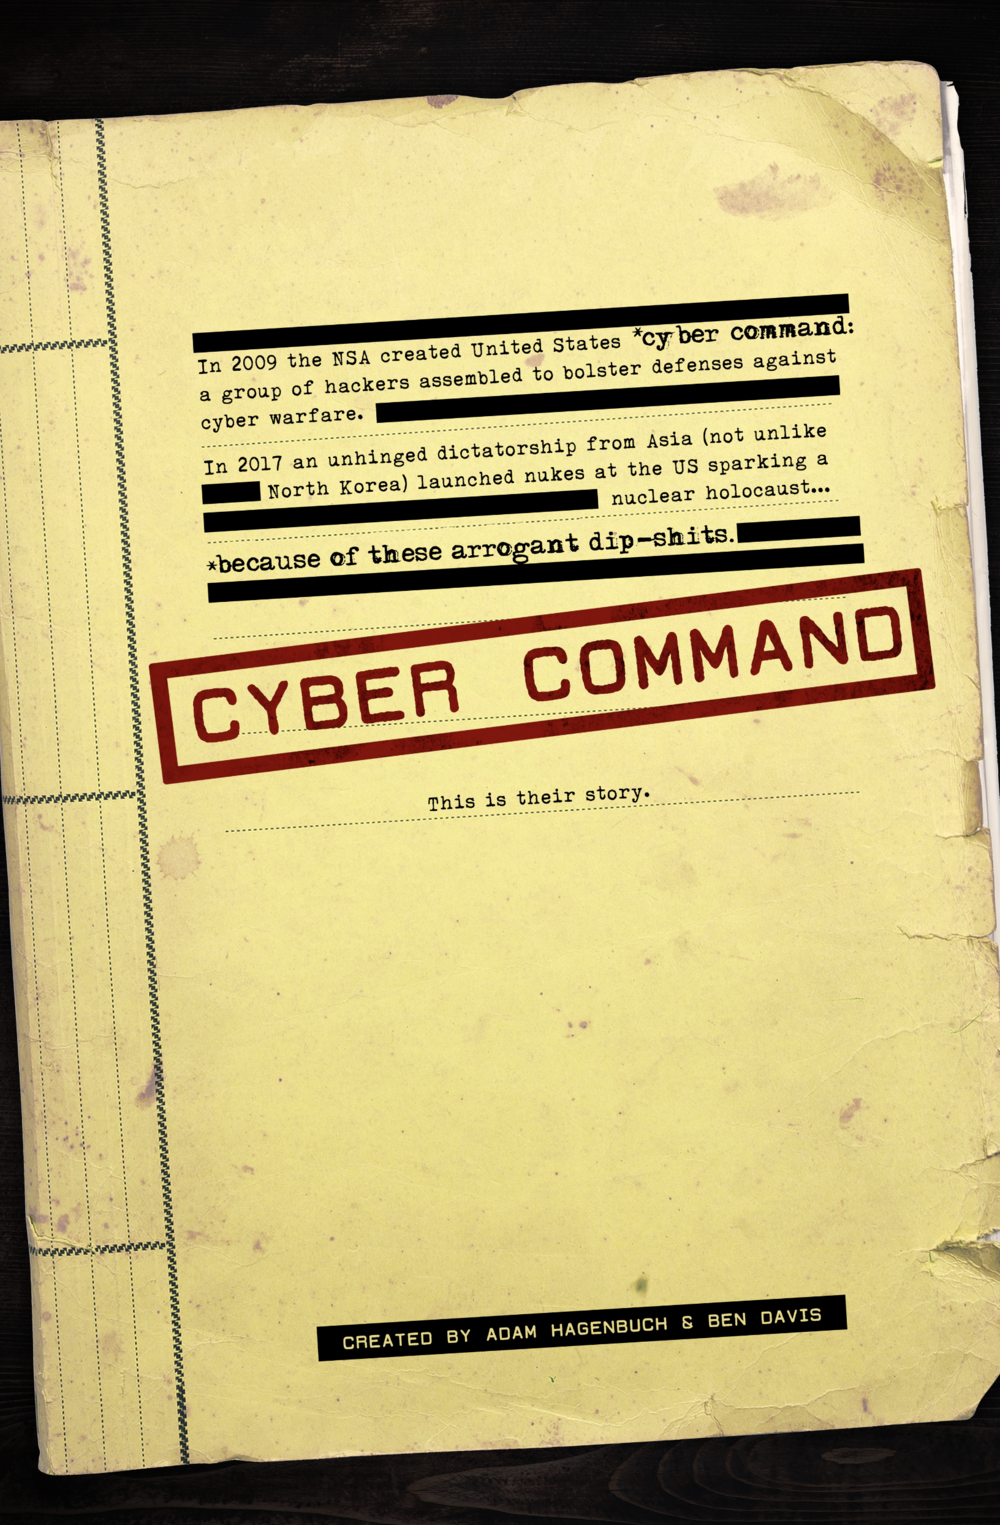 CYBER COMMAND - WEB SERIES | ACTION-COMEDY • SPY • SATIRELOGLINE: A team of misfit savants are recruited by US Cyber Command, an elite branch of the NSA made up of highly skilled hackers whose mission is to increase security against foreign and domestic cyber attacks. This team of dip-shits and their meathead superiors unintentionally spark the last decade of intelligence mishaps that lead to a nuclear holocaust.CO-CREATED WITH ADAM HAGENBUCH